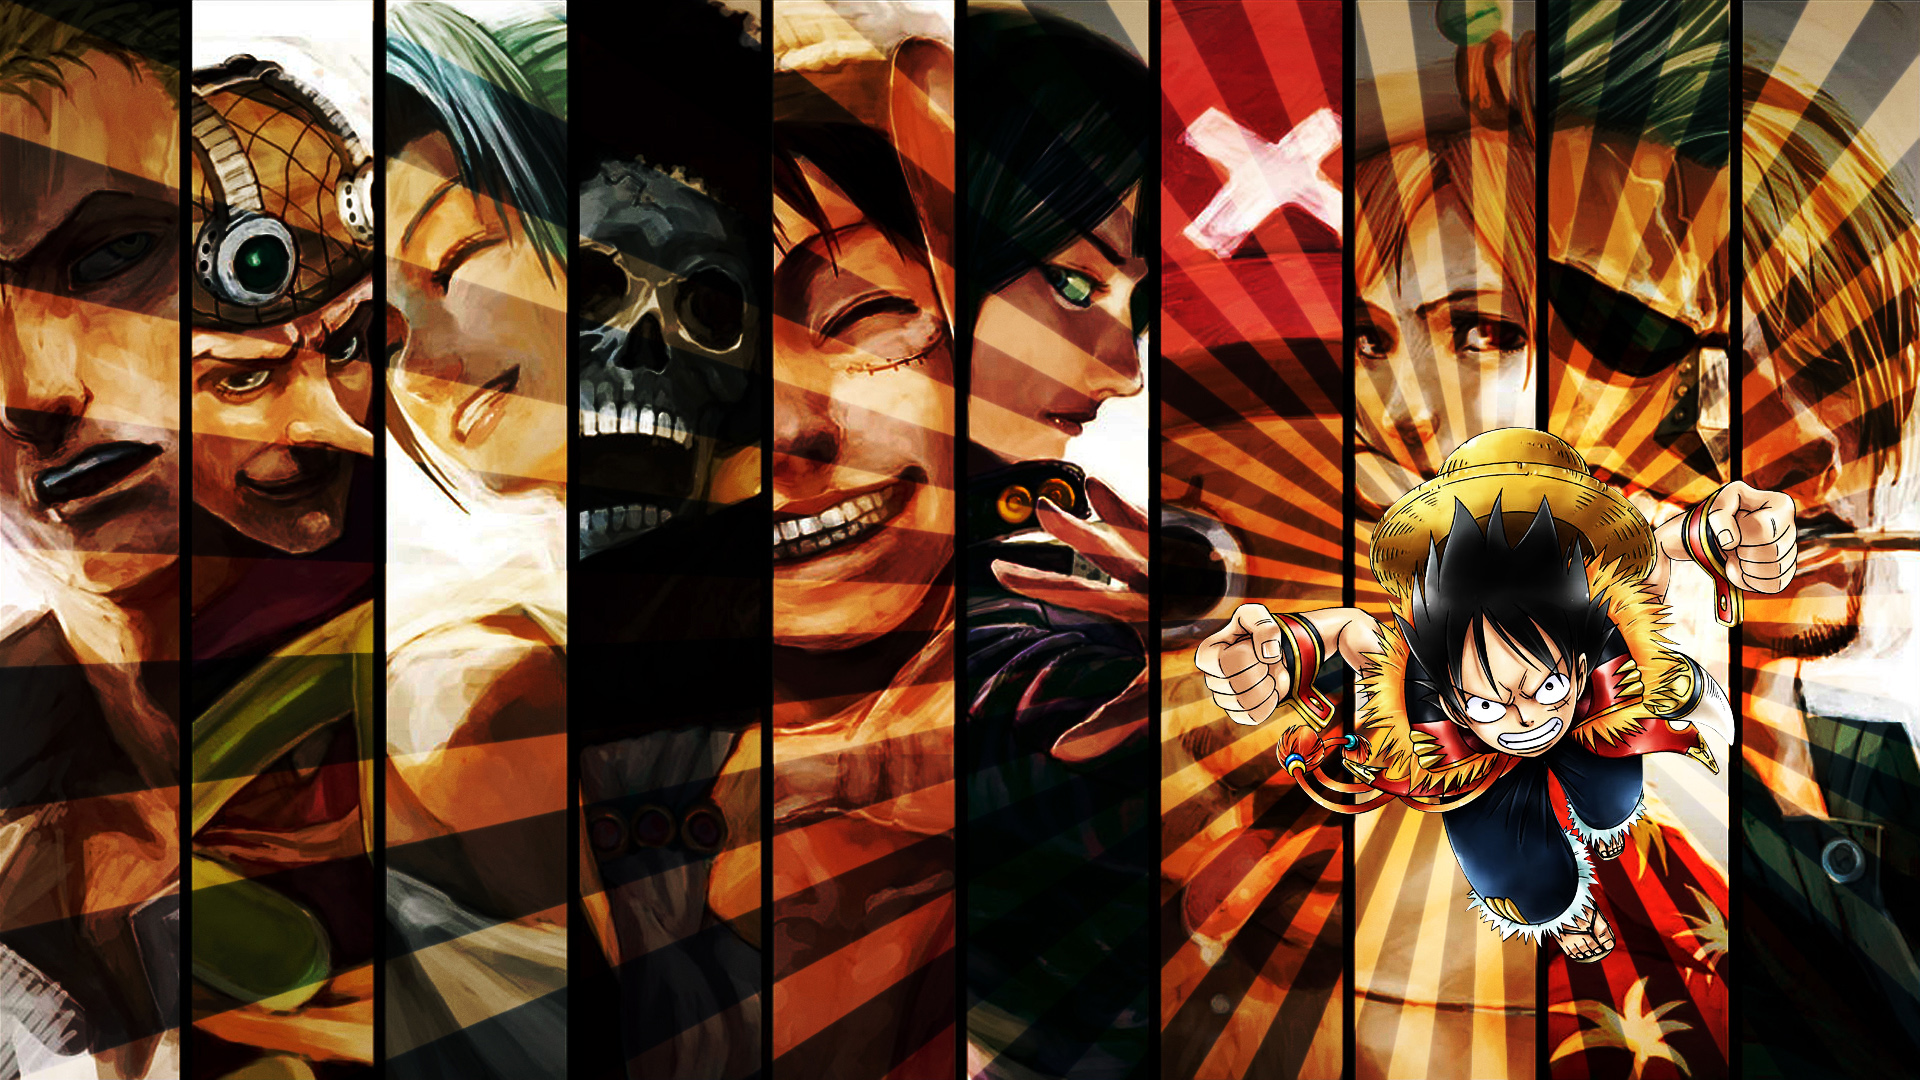 Hd Wallpapers 1920x1080 One Piece Wallpaper Directory